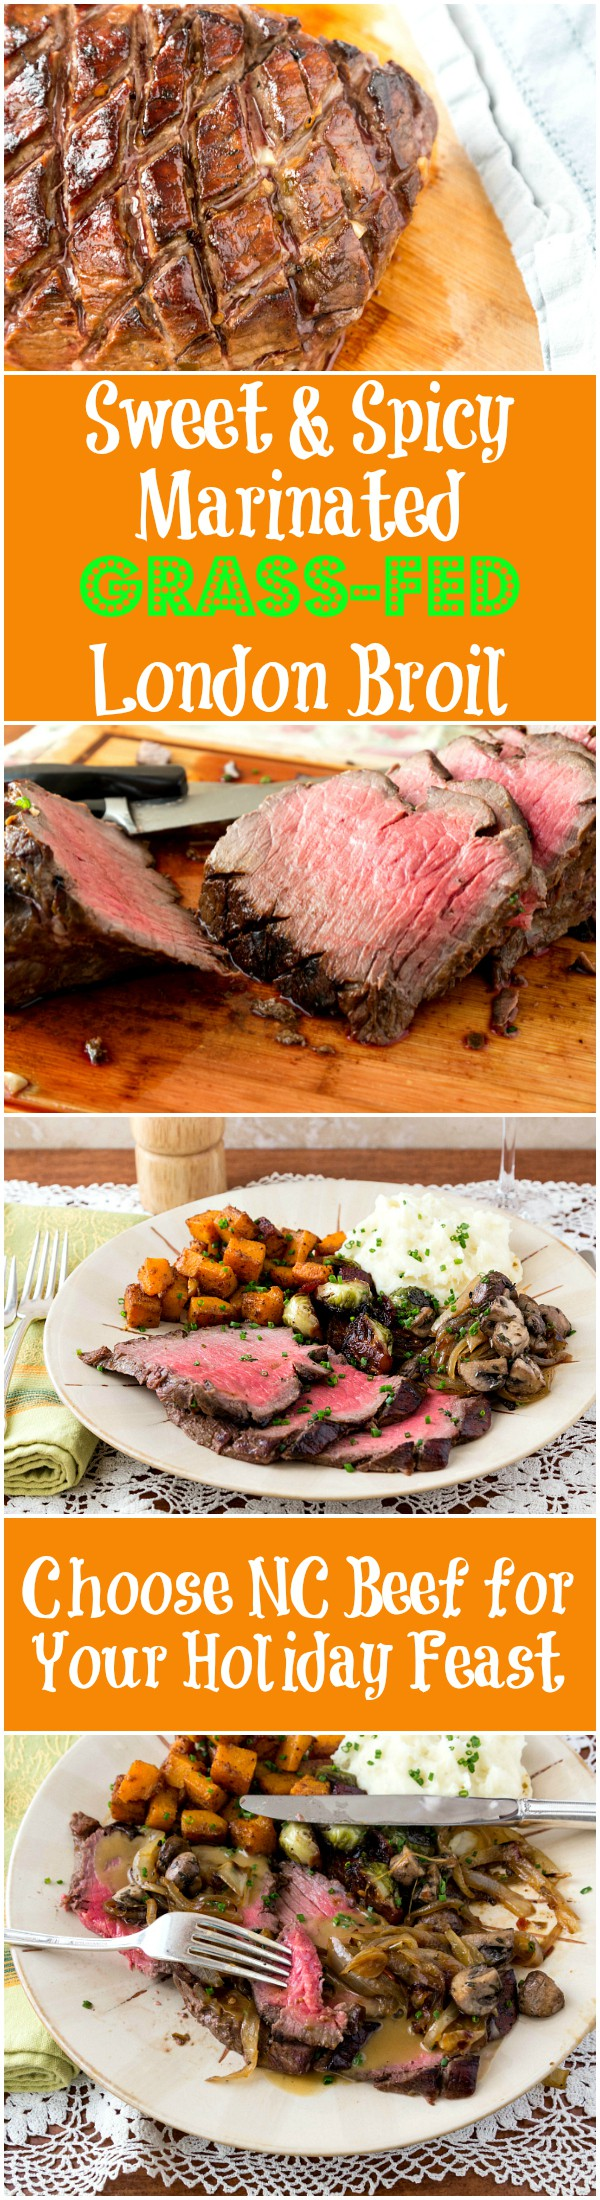 Choose NC Beef for your holiday meal! This sweet and spicy grass fed London Broil is sure to please your holiday crowd! #gottobeNCbeef #sponsored | pastrychefonline.com